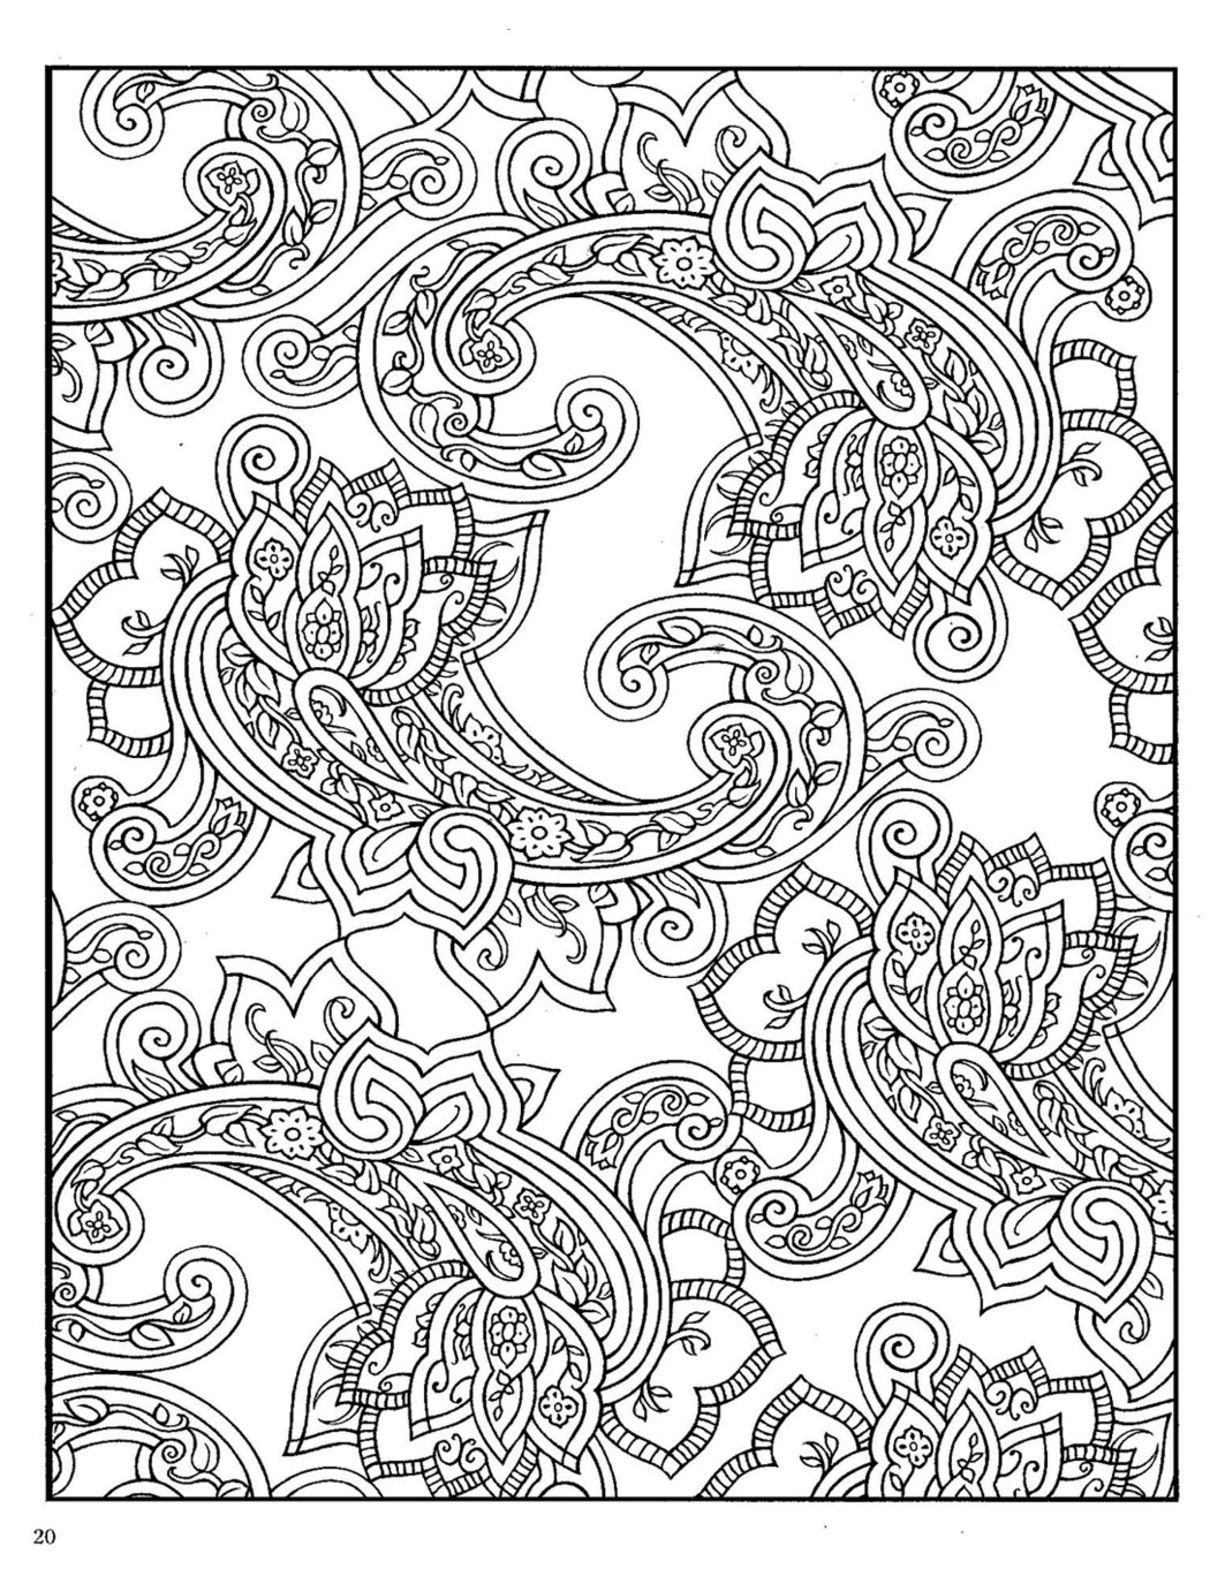 Dover Publications Paisley Designs Coloring Book | индия. огурцы ...